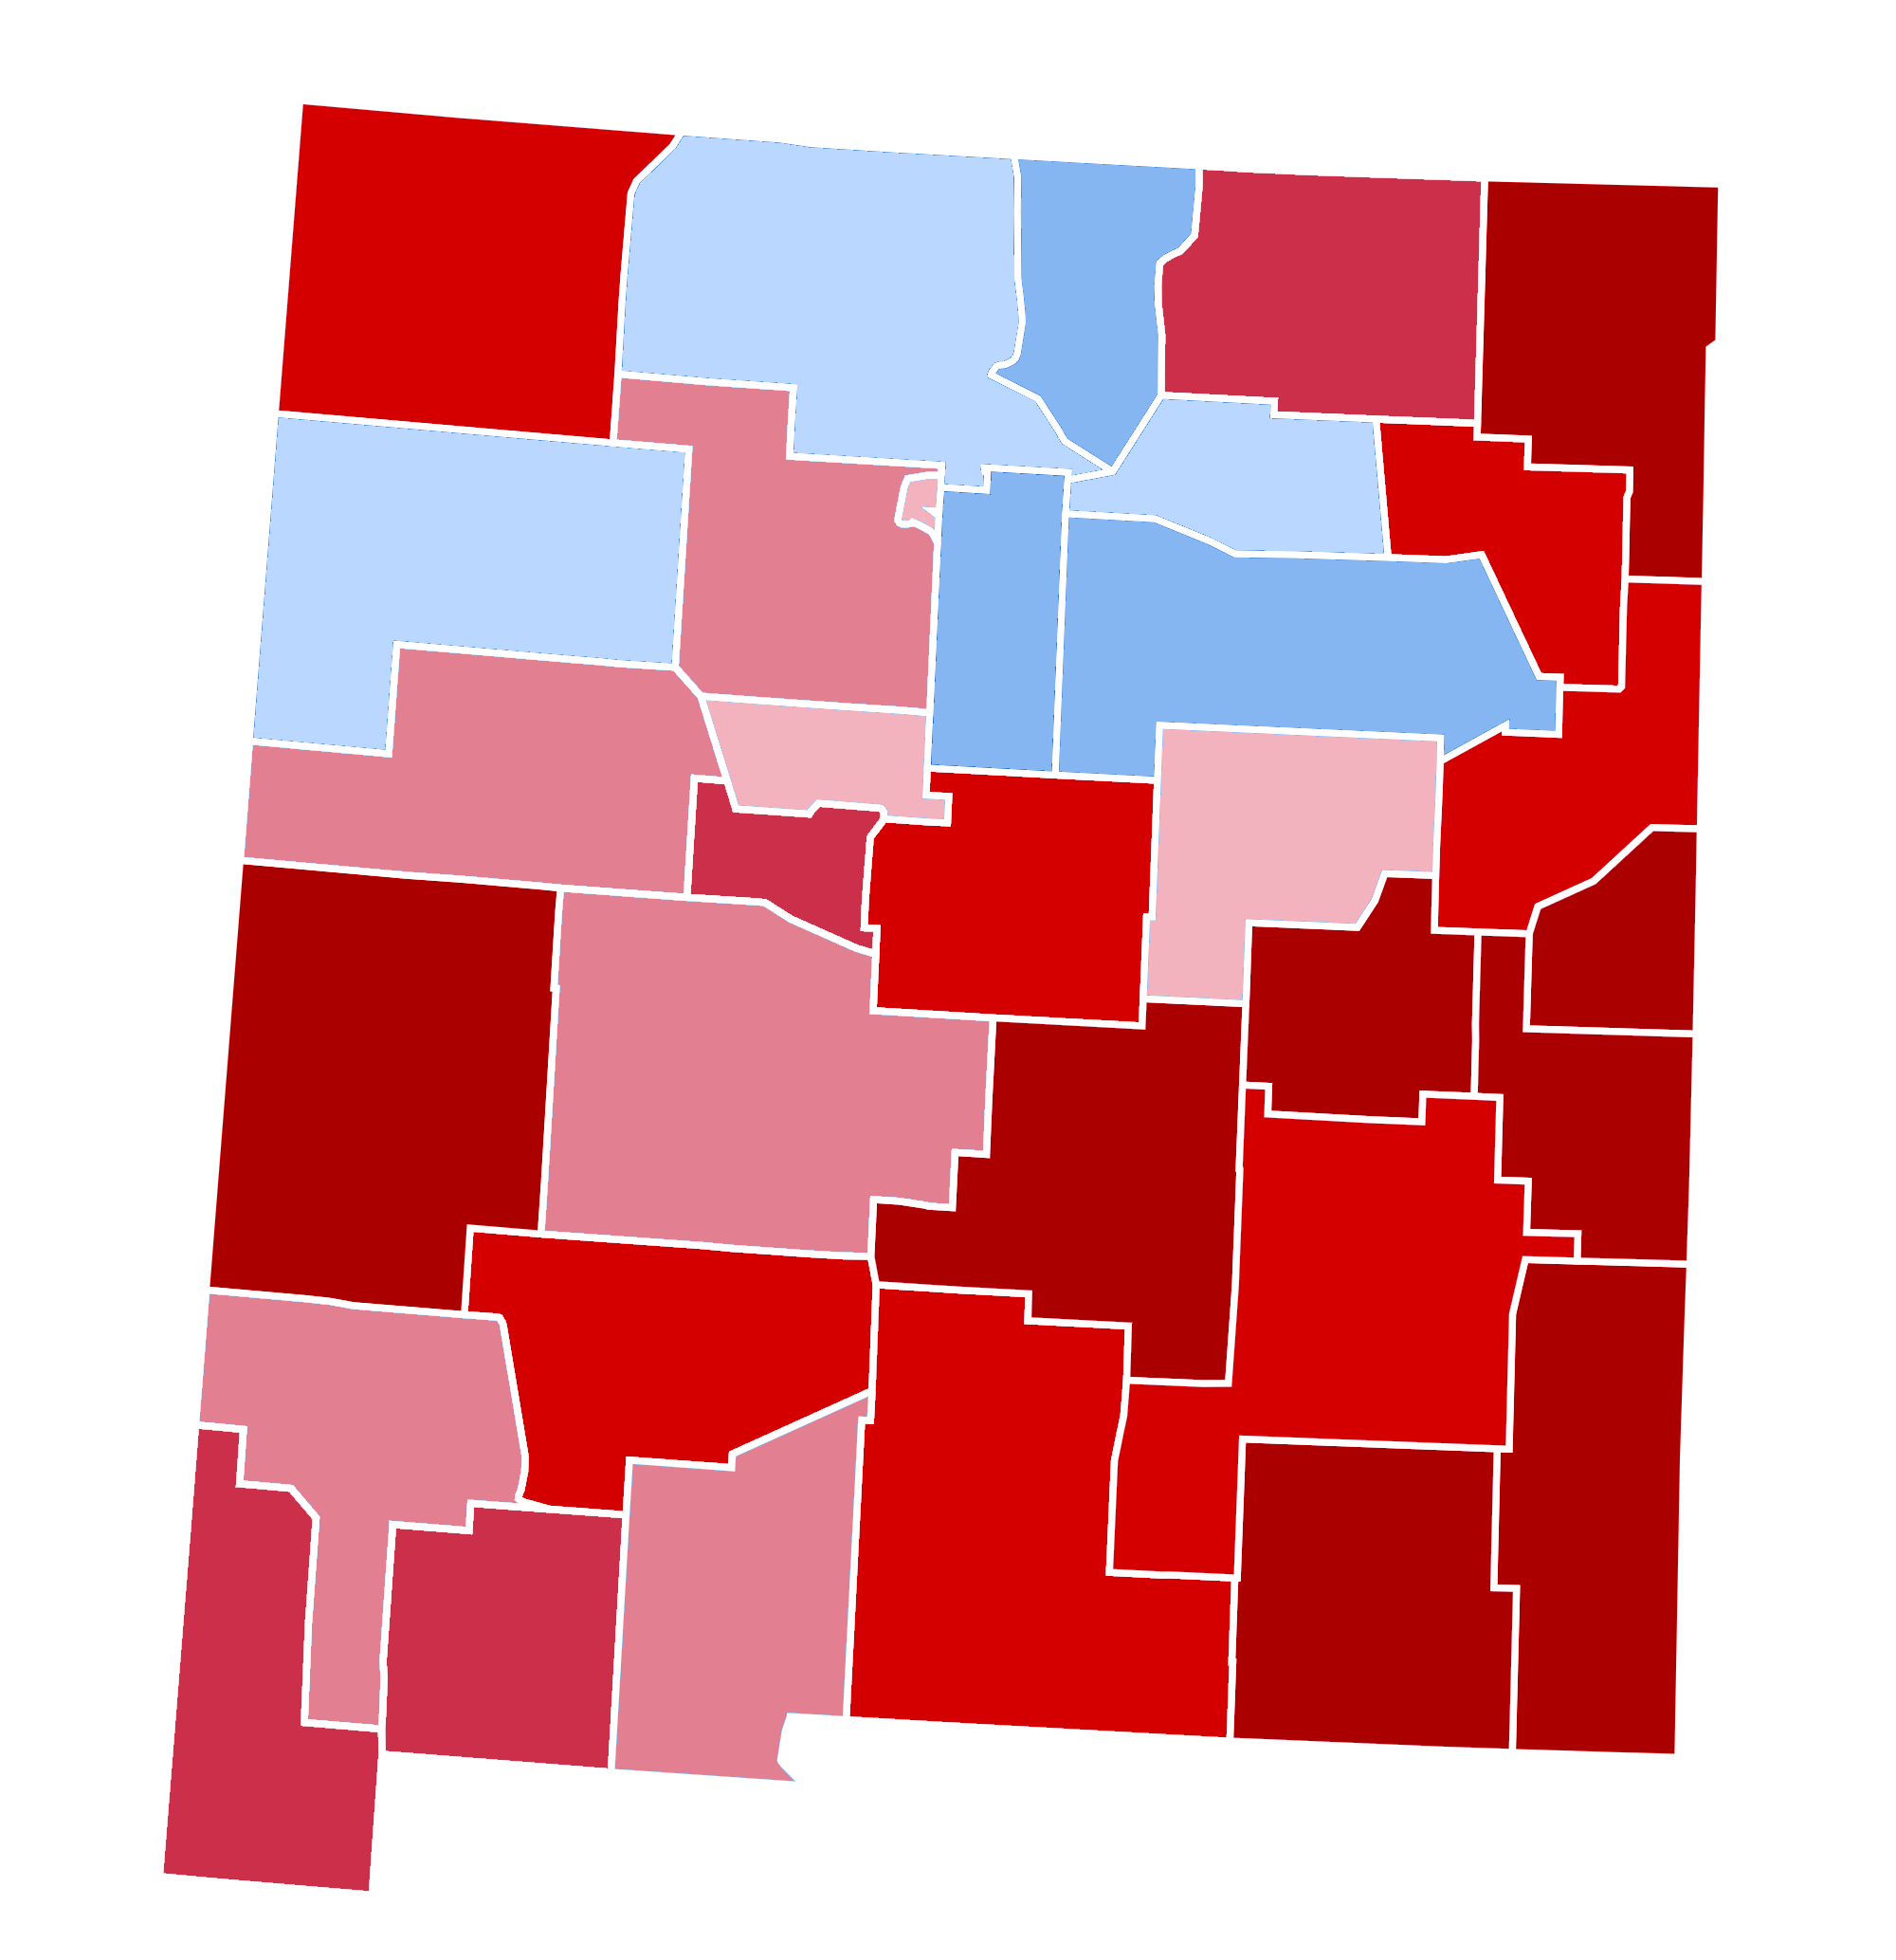 New_Mexico_Presidential_Election_Results_2016_Republican_Landslide_15.06%.png